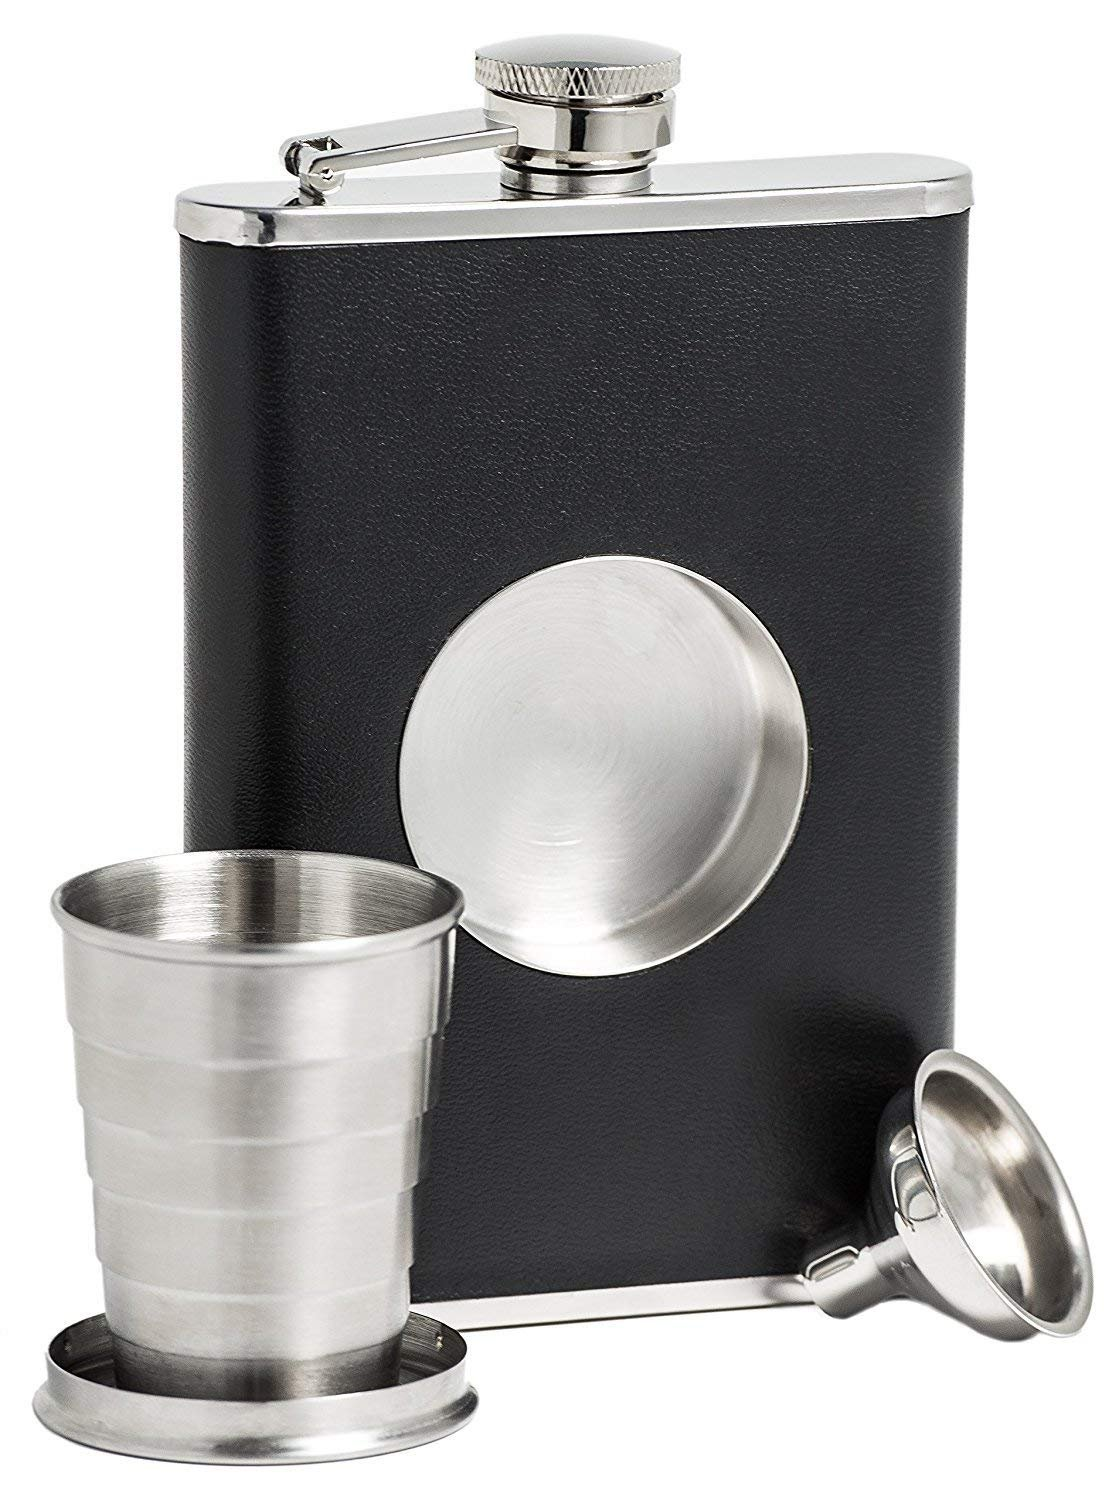 Stainless Steel Hip Flask, ICASA, 8 oz Shot Flask and Built-in Collapsible 2 Oz Shot Glass & Flask Funnel, Groomsmen Gifts